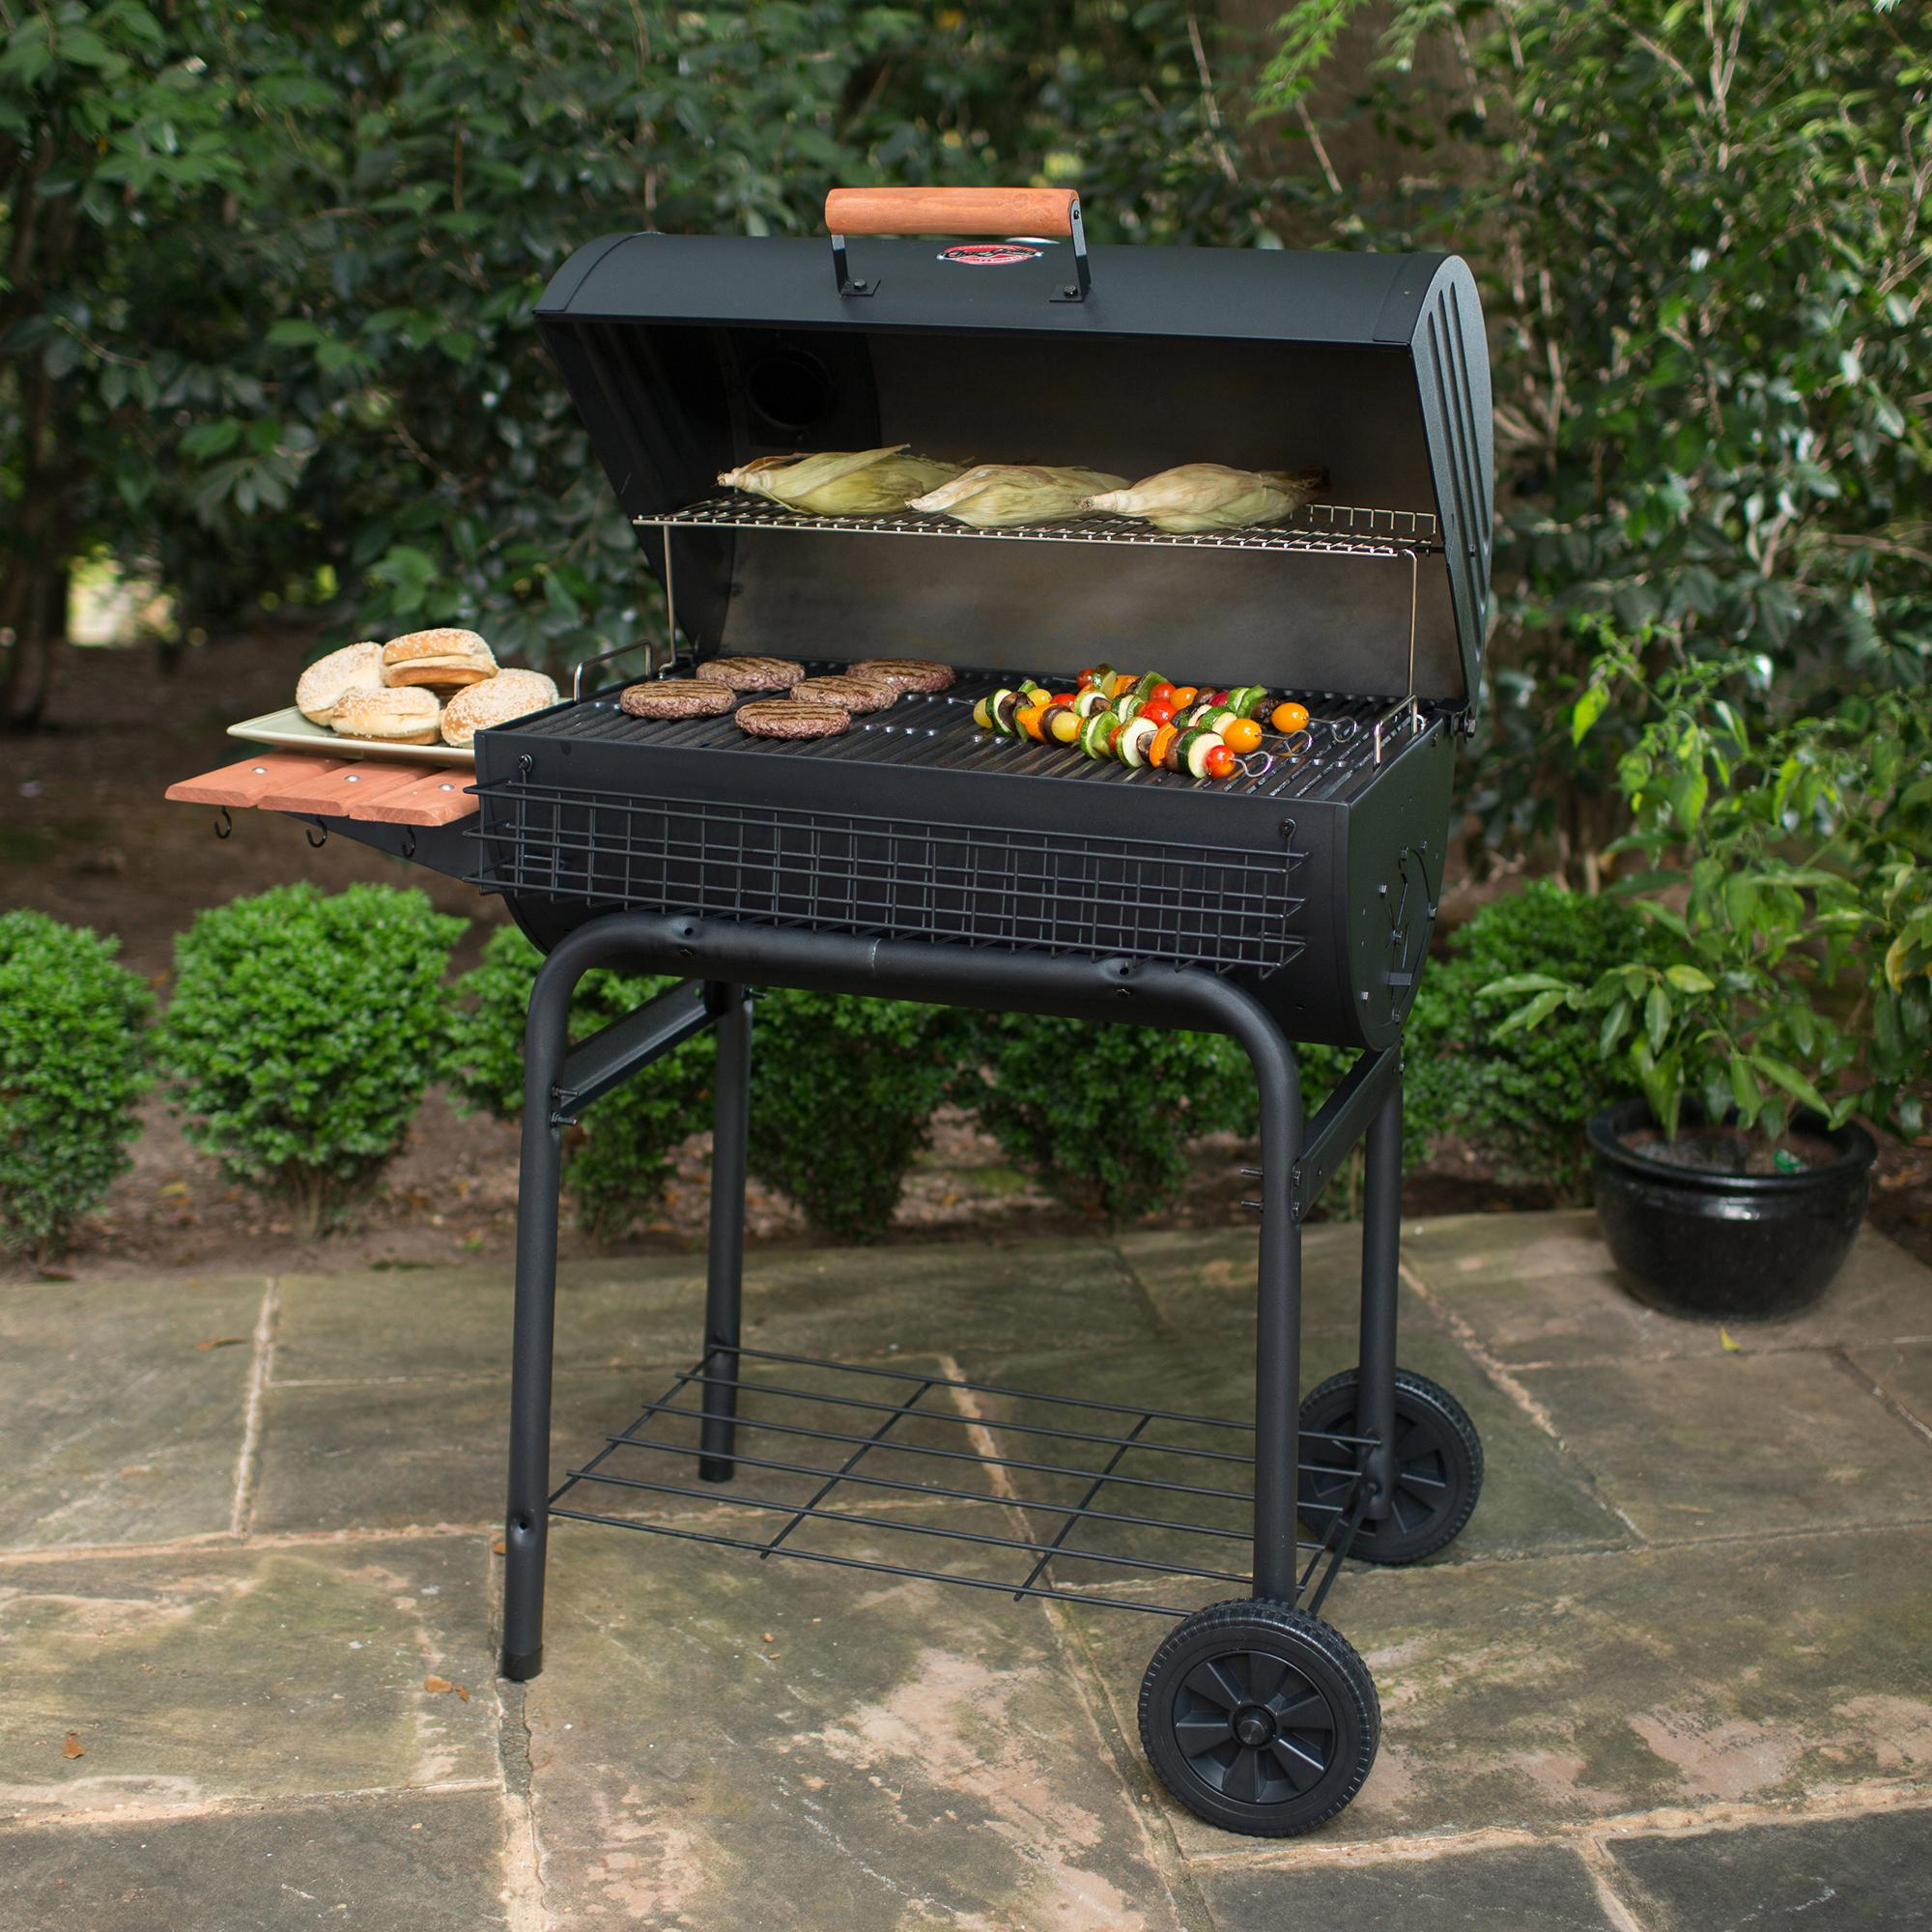 Charcoal Grill Smoker Barbecue Weber BBQ Heavy-duty Steel ... on Outdoor Grill Patio id=36891